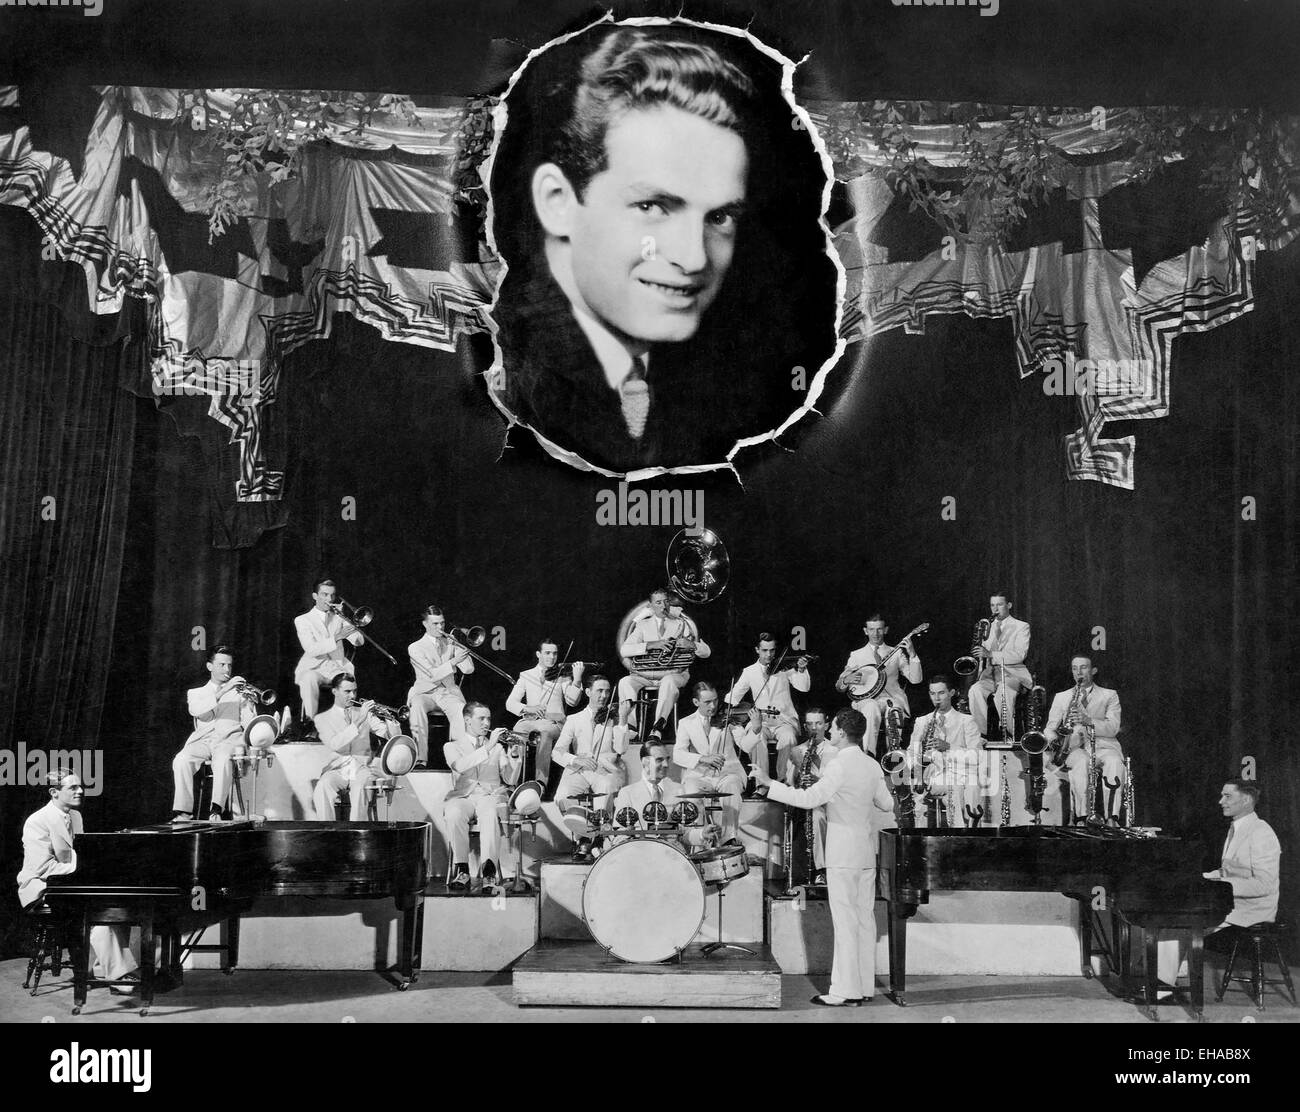 Fred Waring and His Pennsylvanians, Portrait, circa 1920's - Stock Image